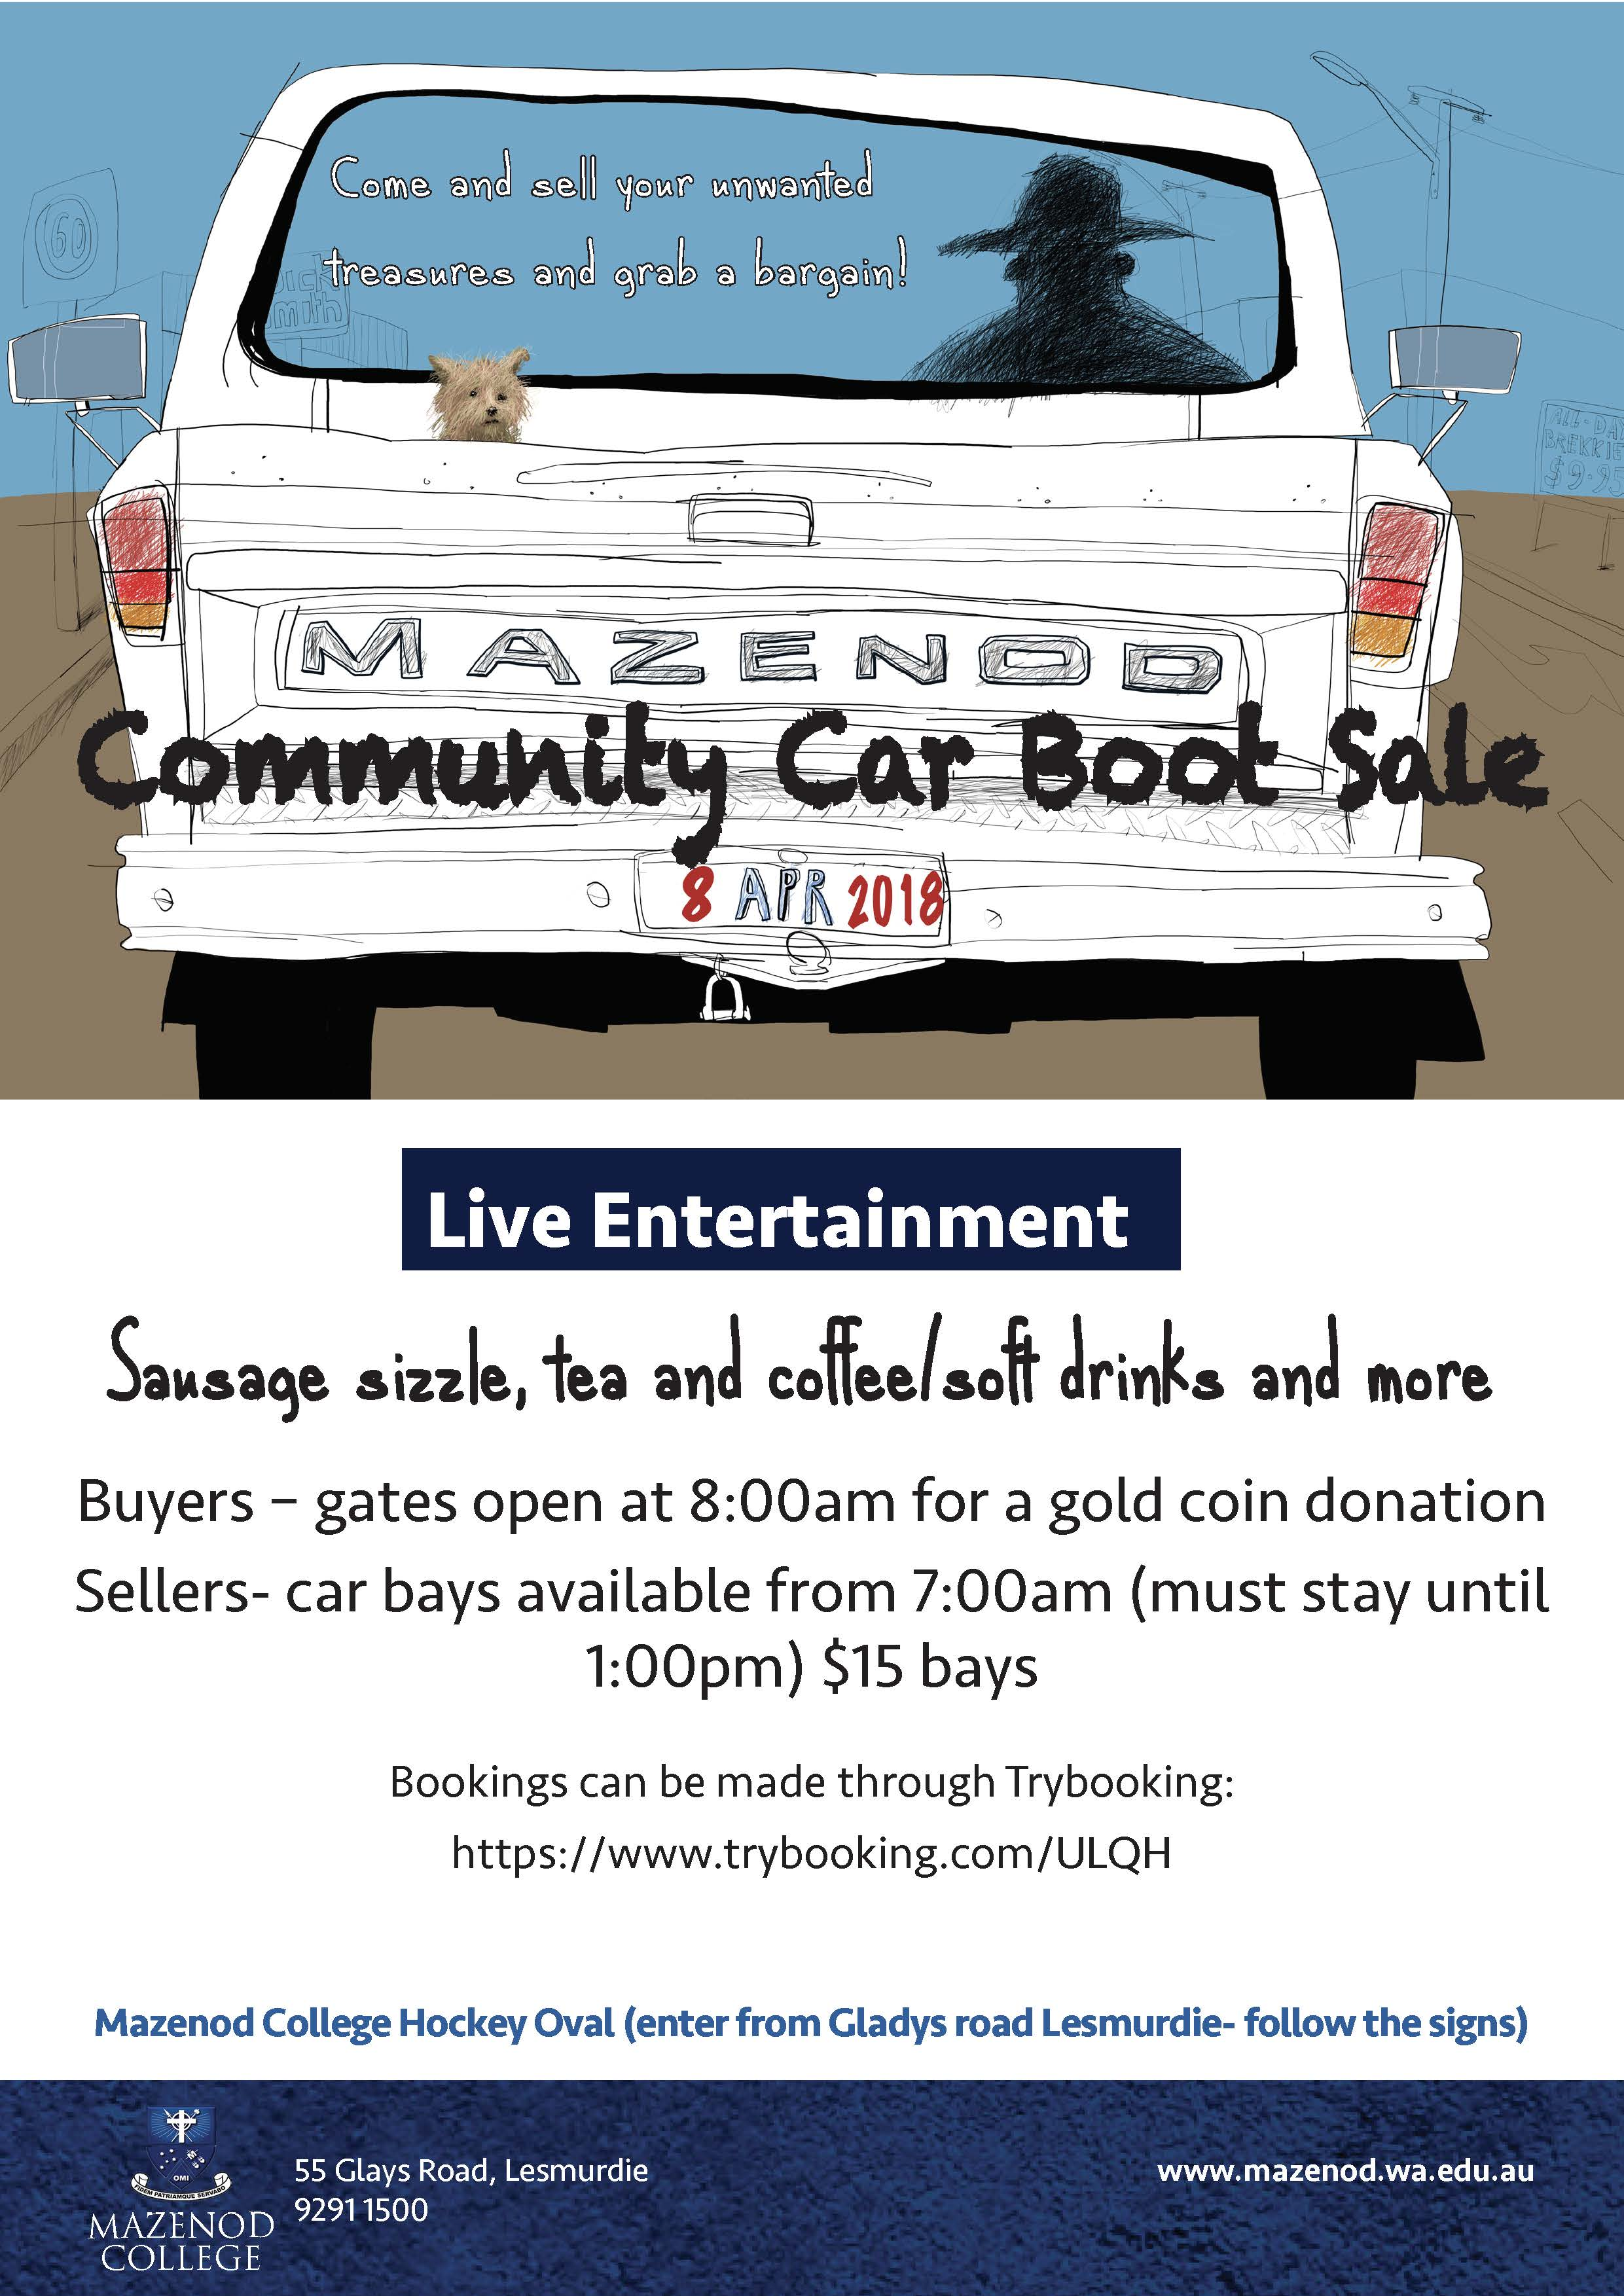 PA Car Boot Sale Flyer1